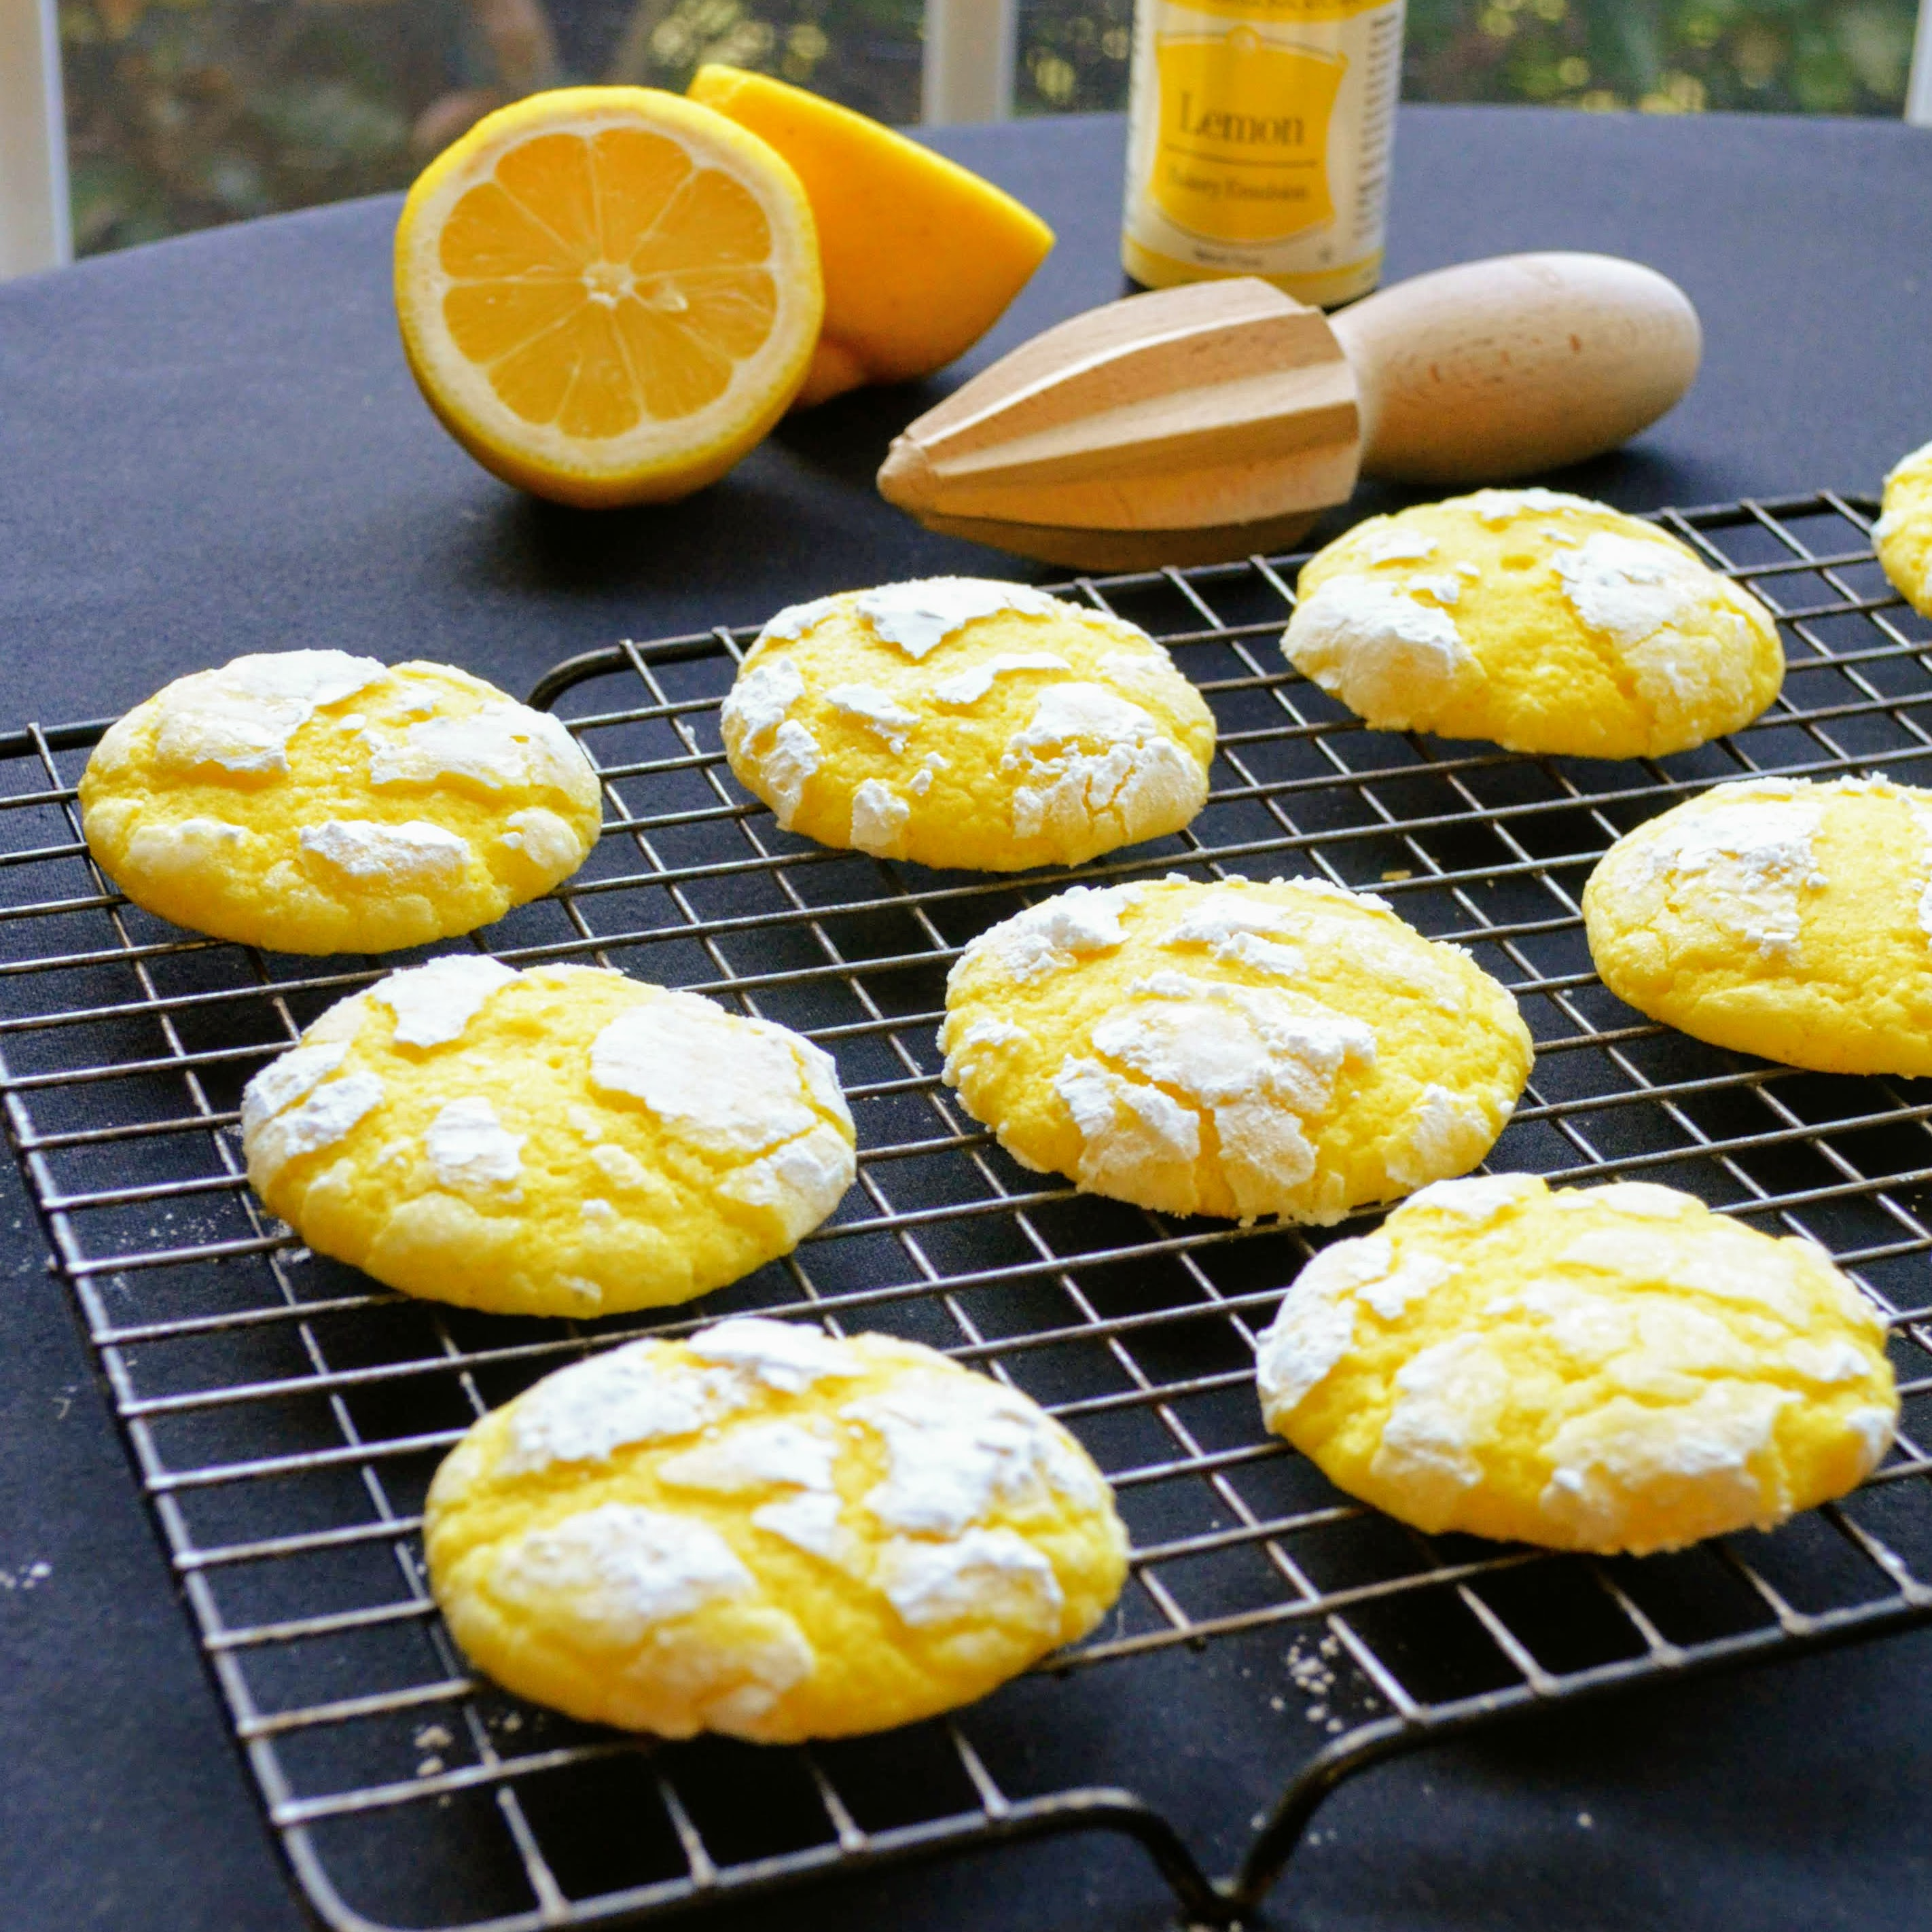 "These made-from-scratch lemon cookies are easy to make and deliver loads of lemony flavor. ""This is a very cakey soft cookie,"" says reviewer bbowling. ""I used 2 TBSP of fresh lemon juice as my lemon was huge and I was concerned the batter would be too thin. That seemed to be the perfect amount."""